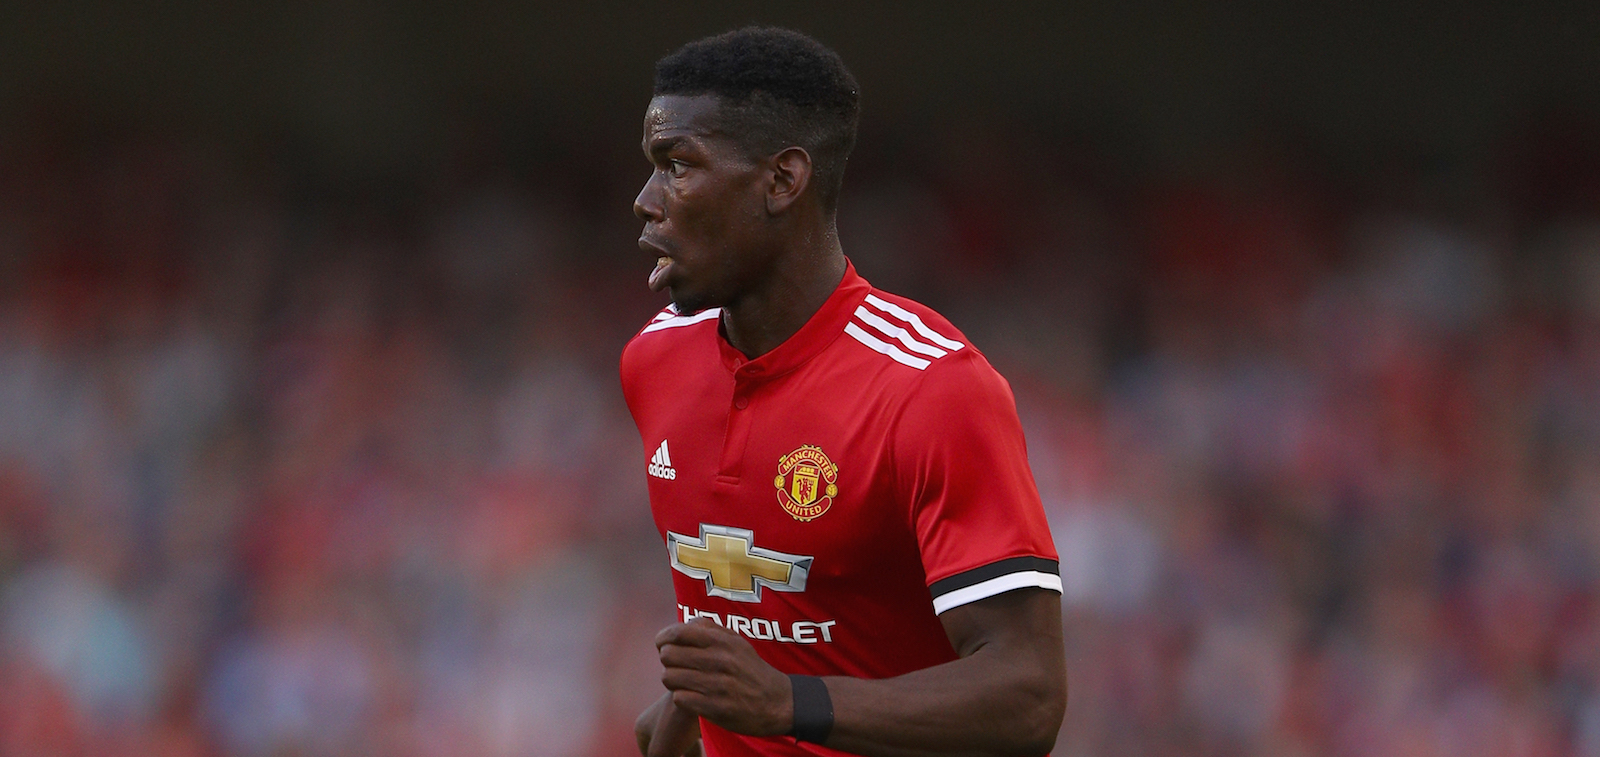 Paul Pogba trains with reserves ahead of Manchester United comeback – report